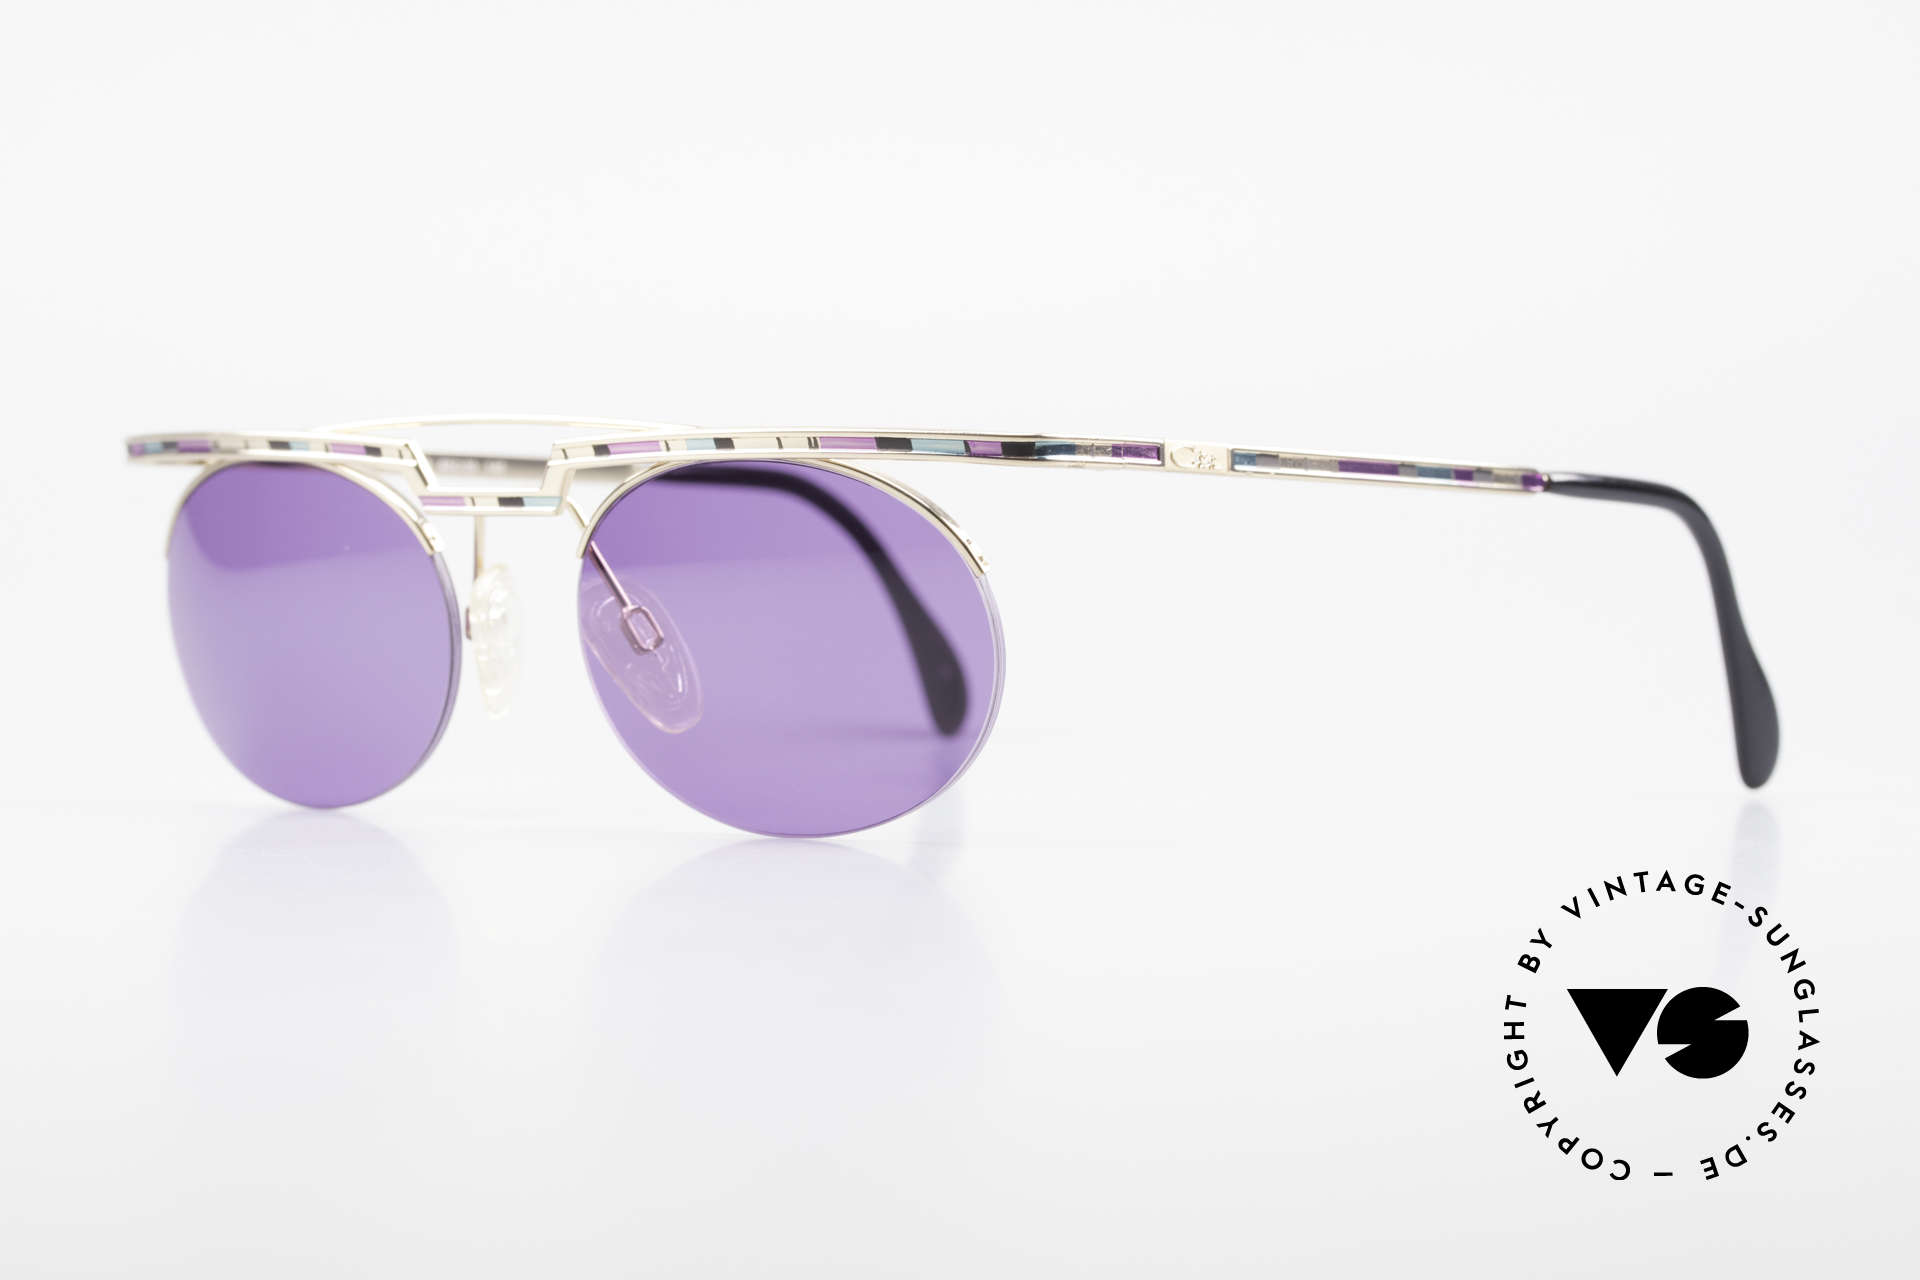 Cazal 758 No Retro Cazal Sunglasses 90s, costly varnishing (characteristical for all vintage Cazals), Made for Men and Women